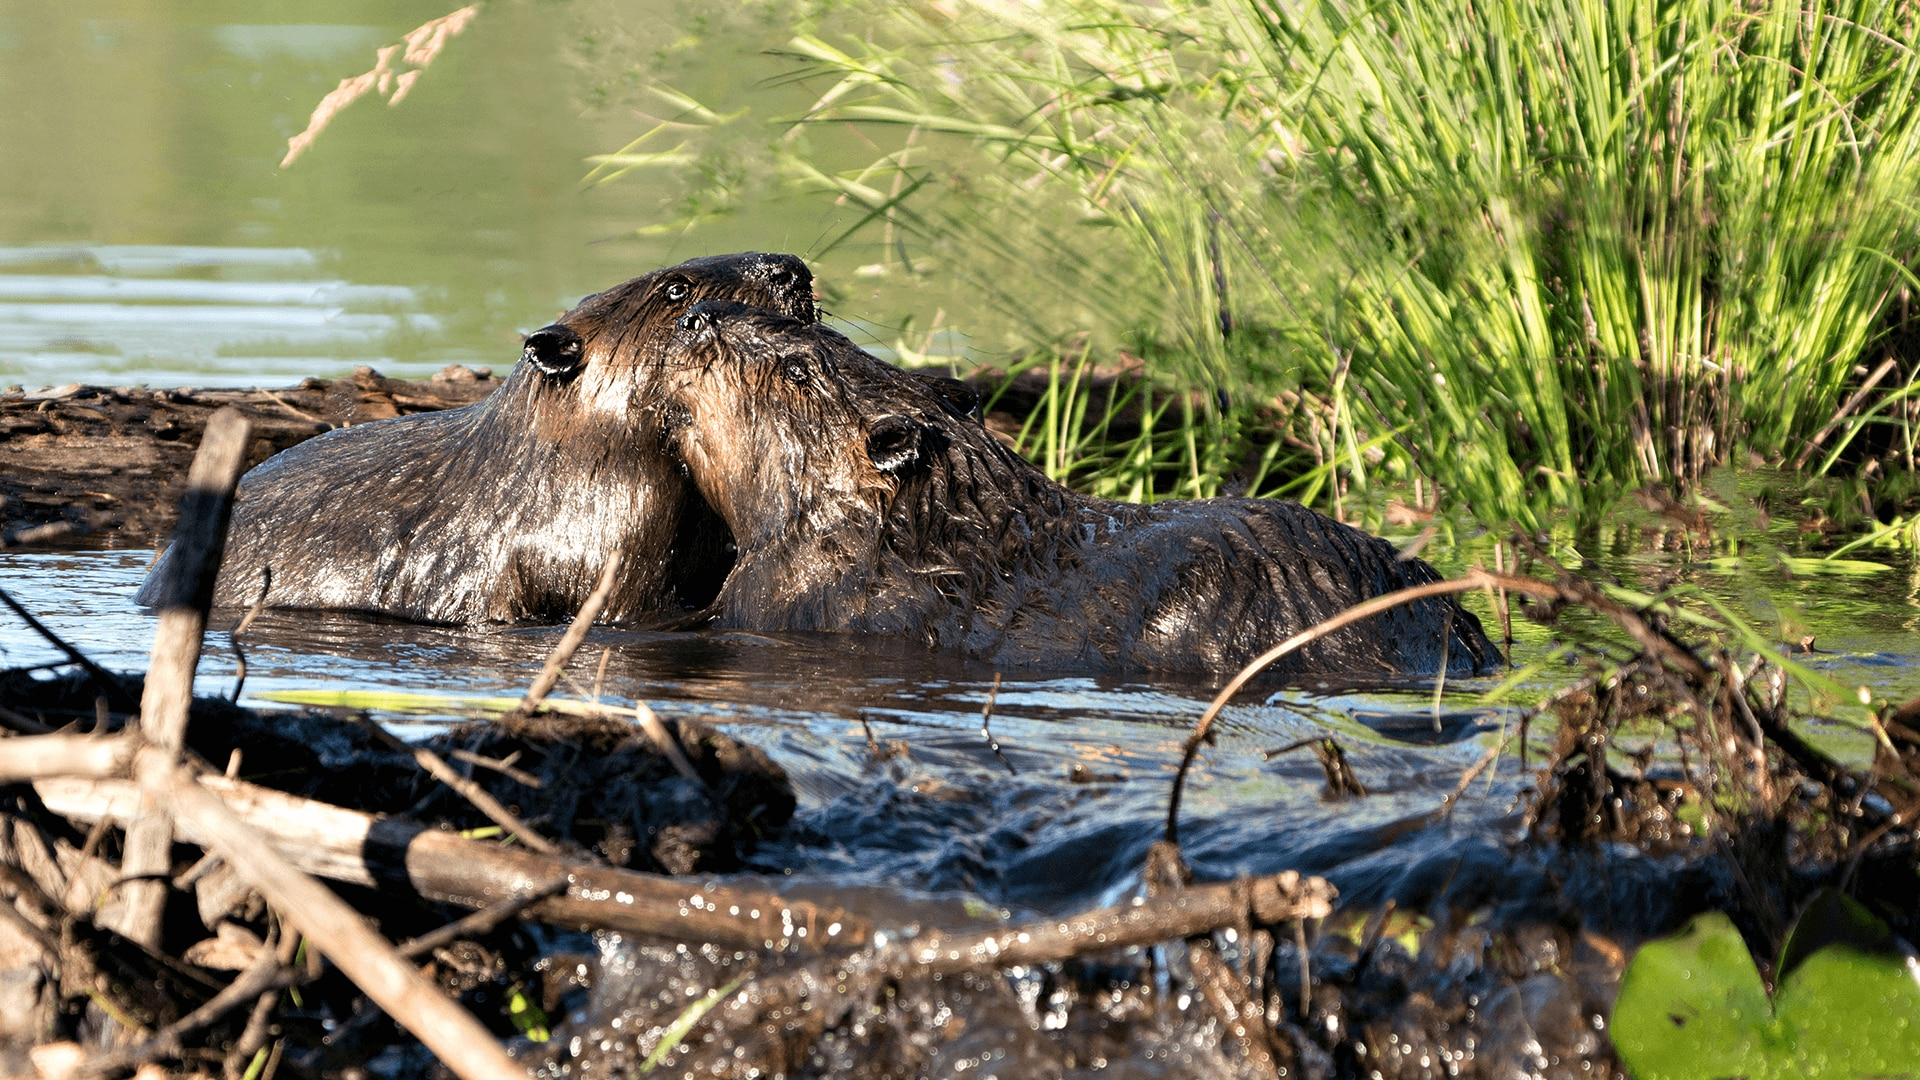 Beavers grooming each other